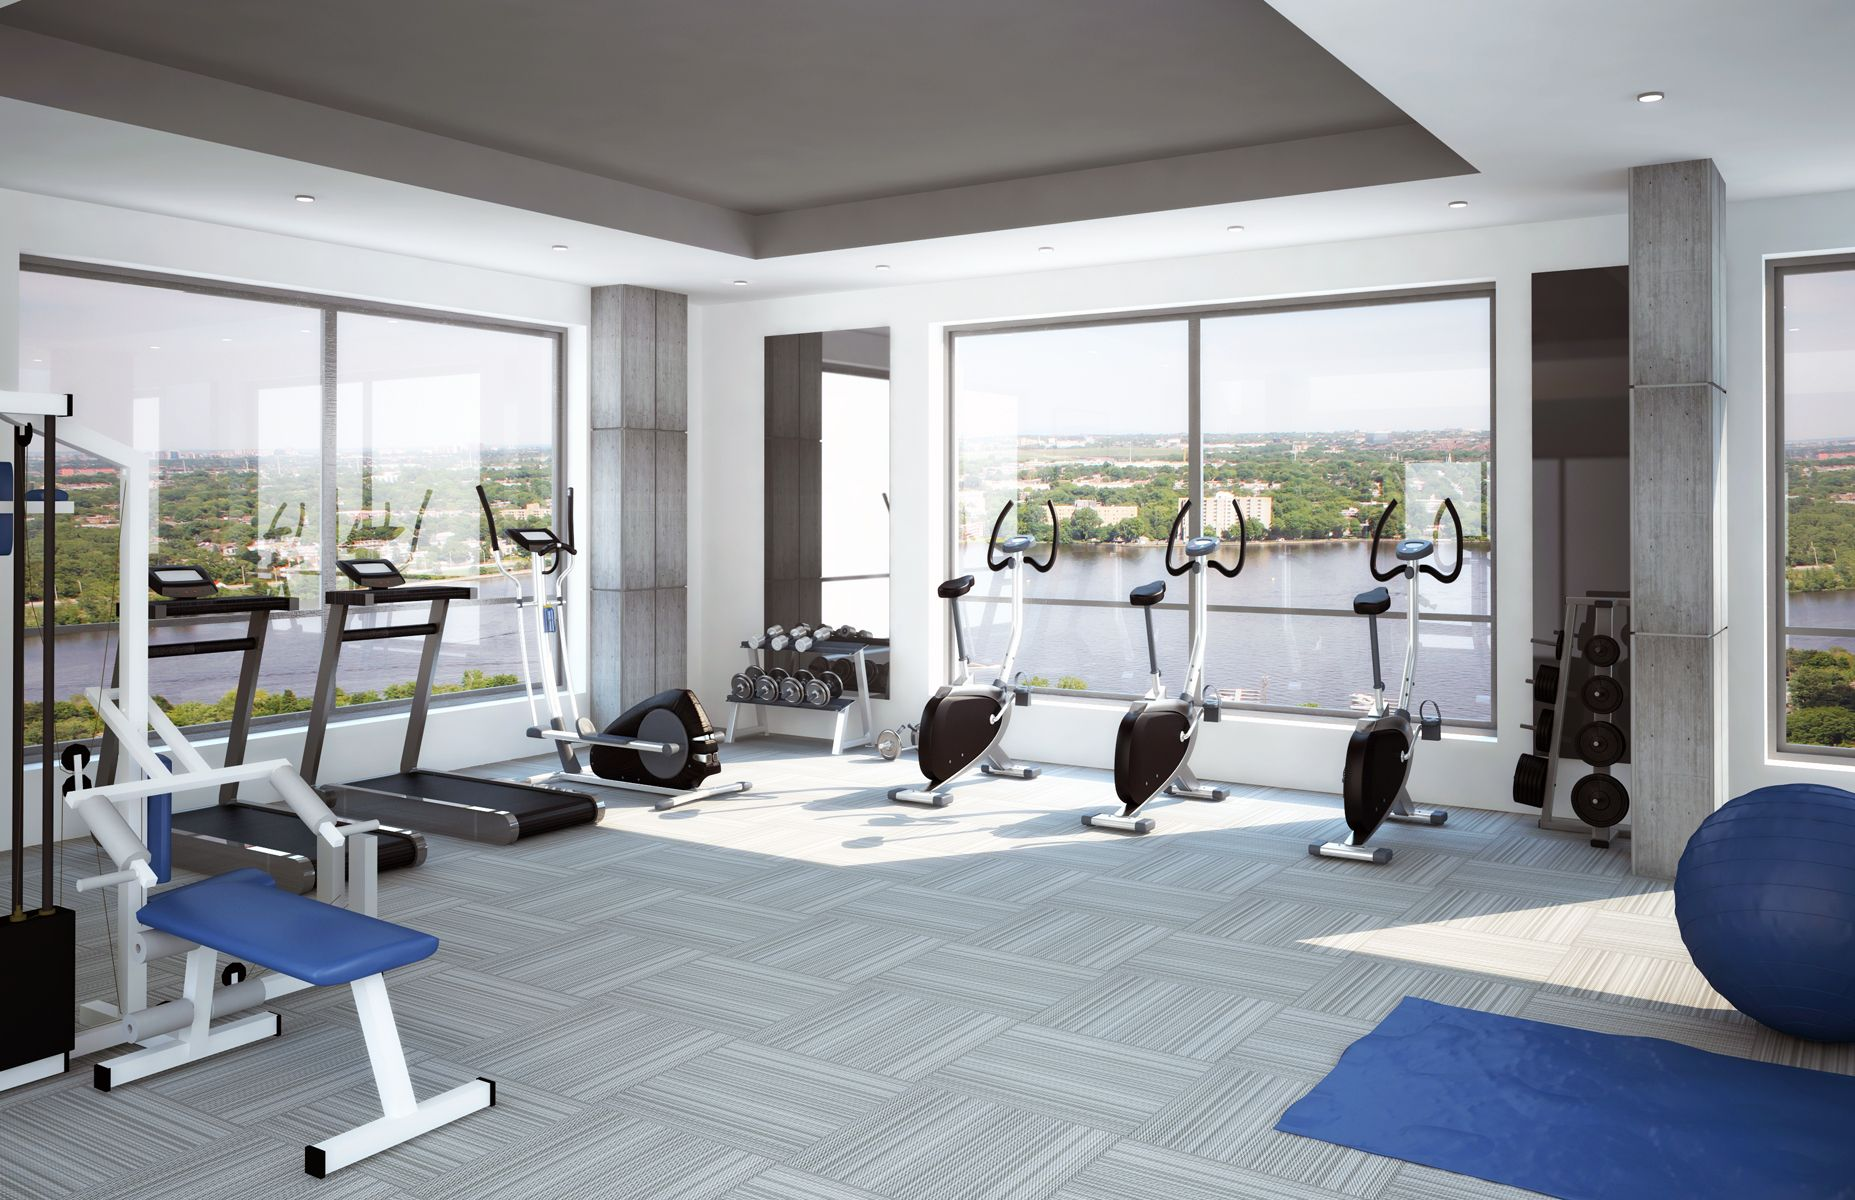 Exercise Rooms Gym Realistic Renderings, The Perfect Marketing Tool For